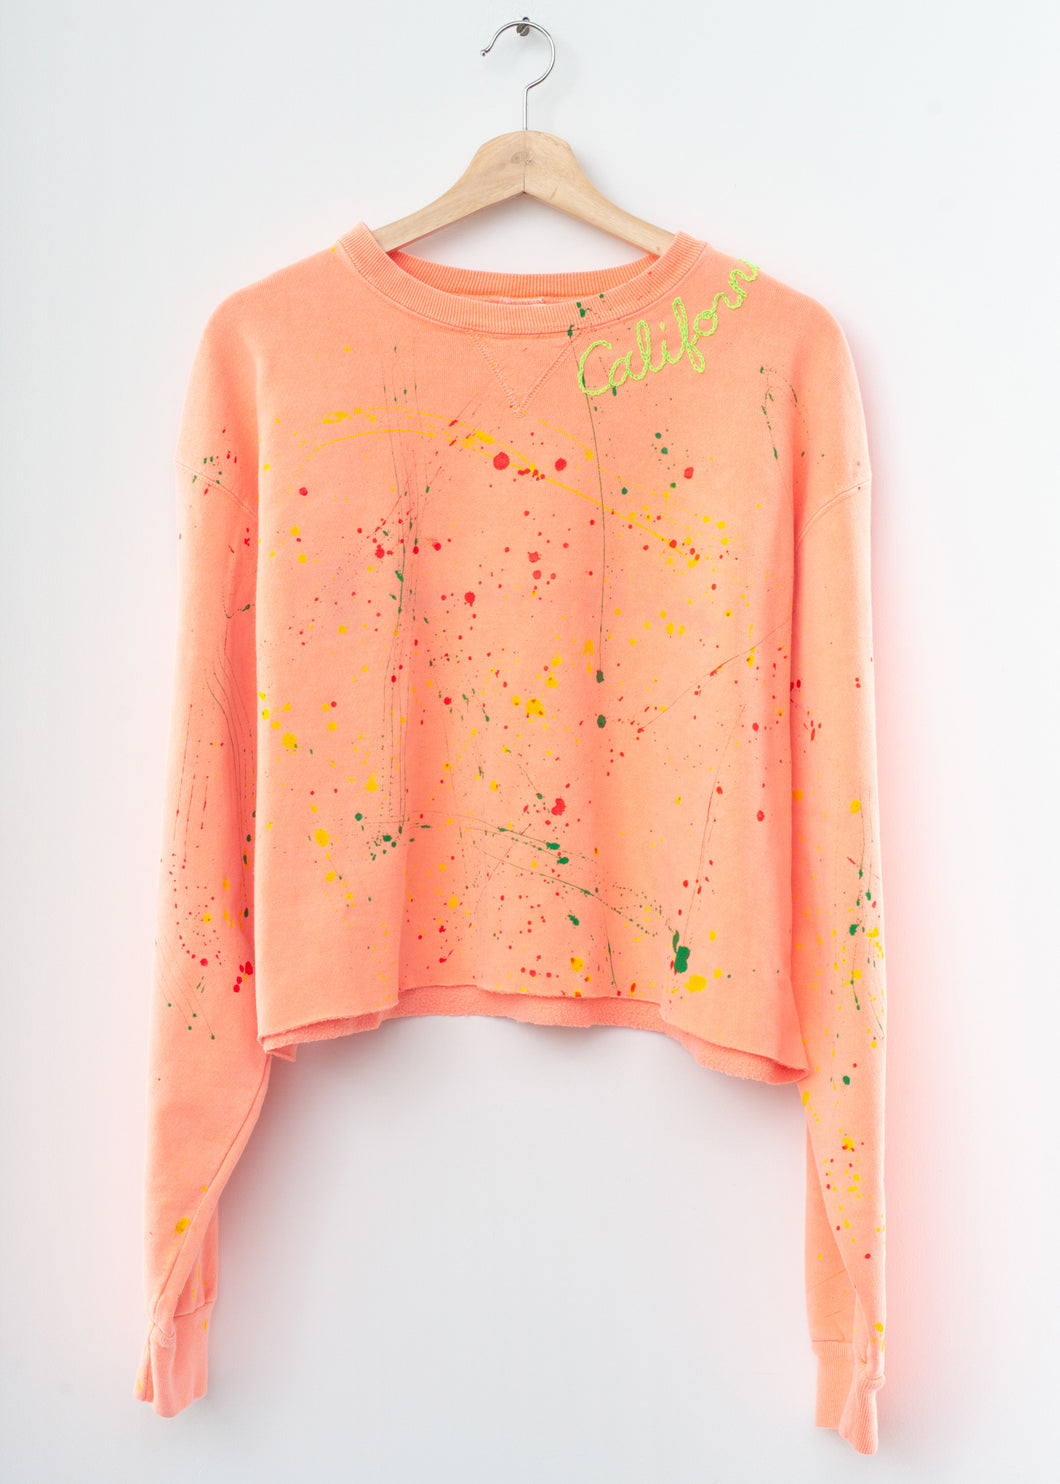 Neon Coral Splash Sweatshirt